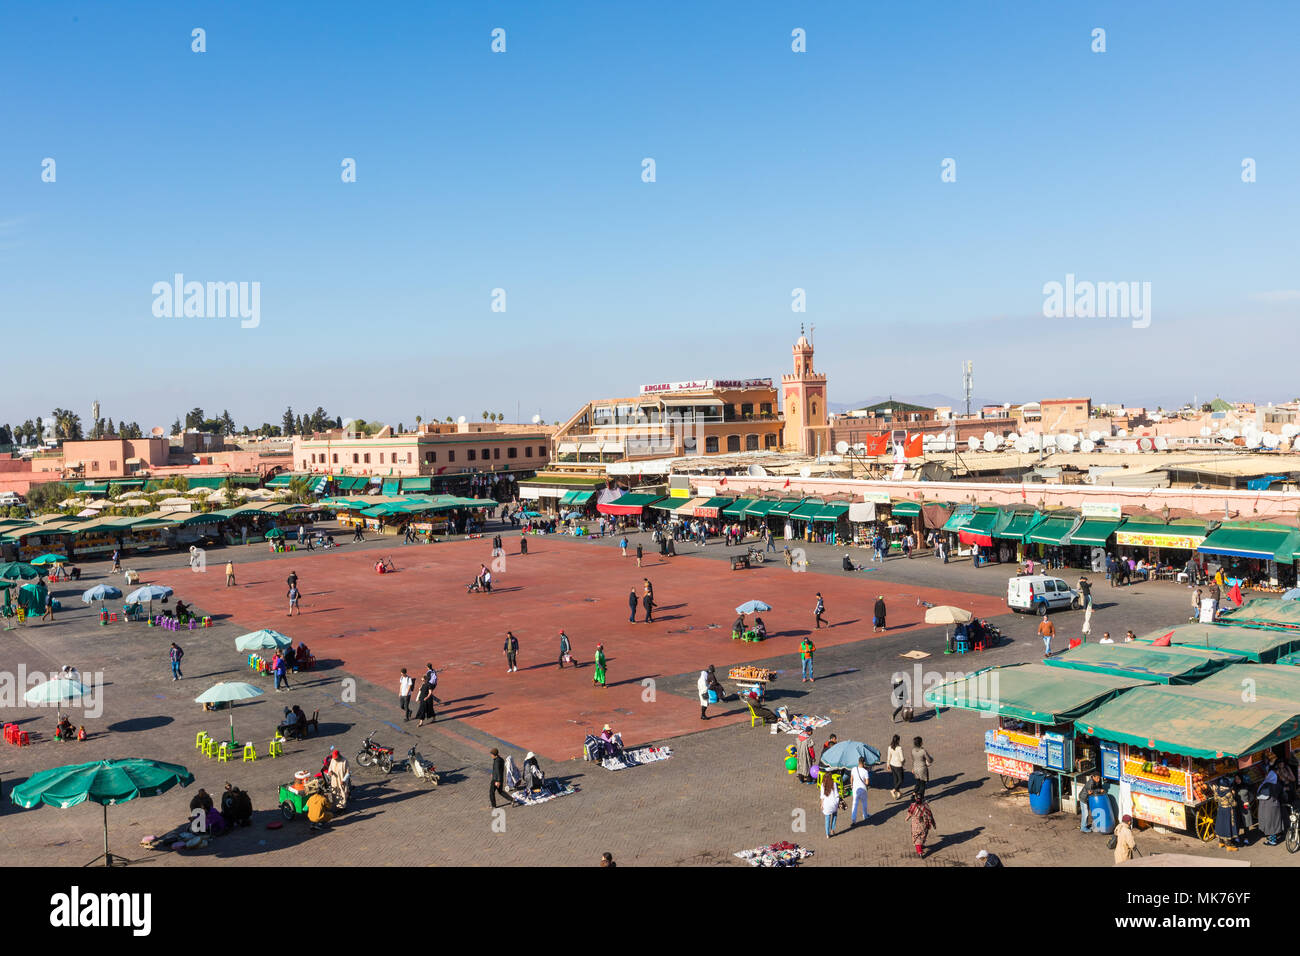 MARRAKESH, MOROCCO - DECEMBER 17, 2017: Jamaa el Fna market square is a famous square and market place in Marrakesh's medina quarter. Stock Photo